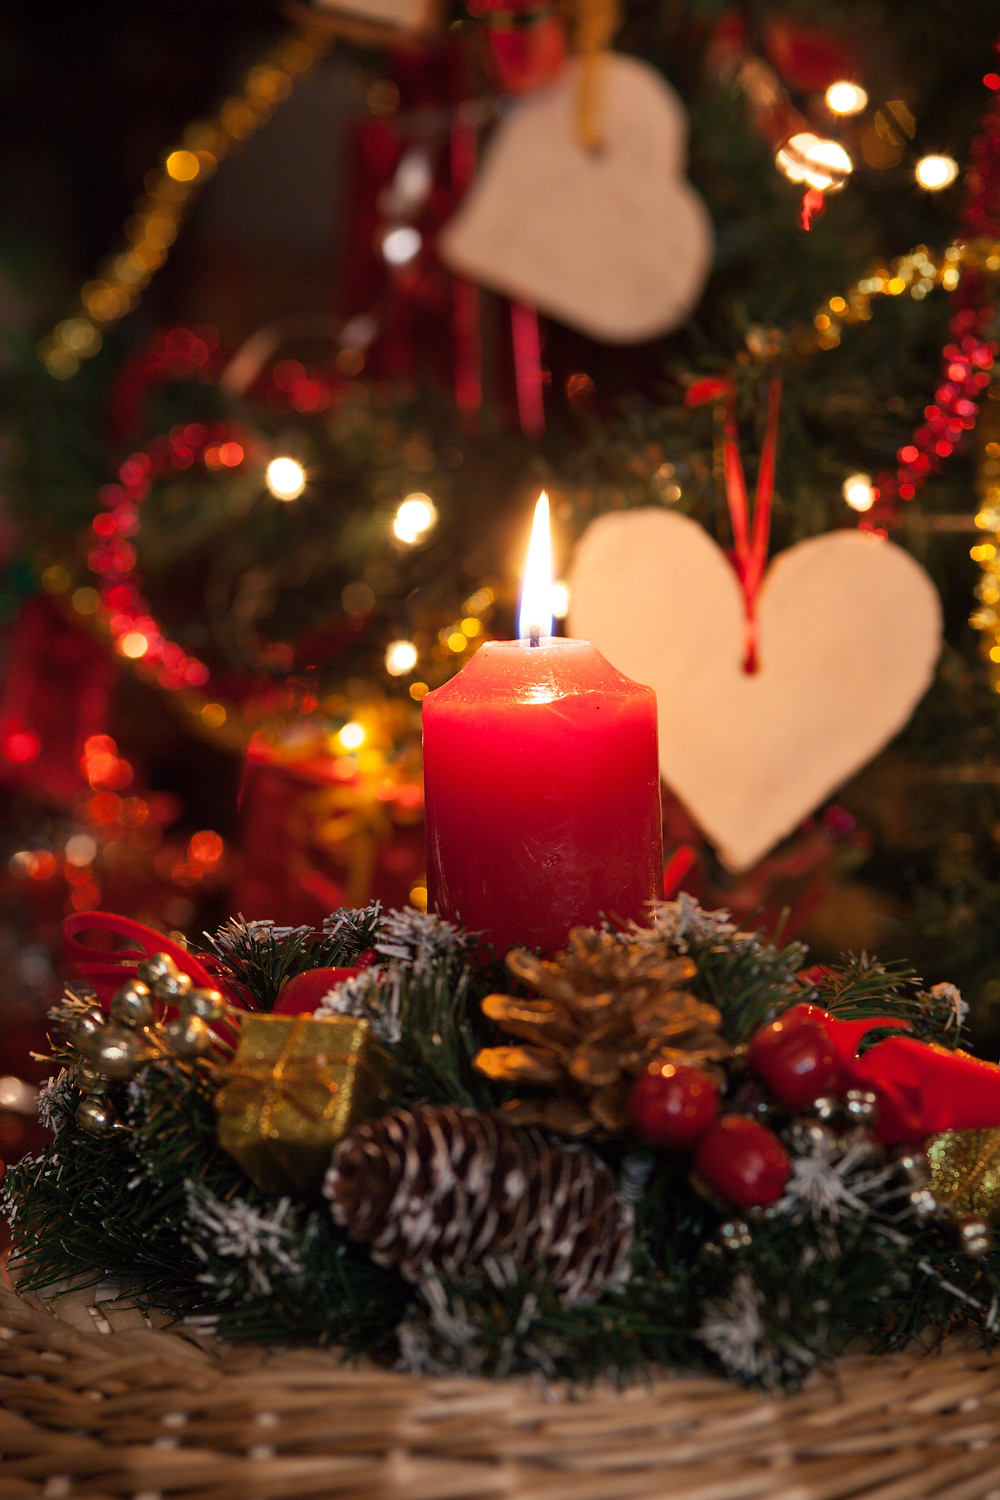 fire safety for your home during holidays